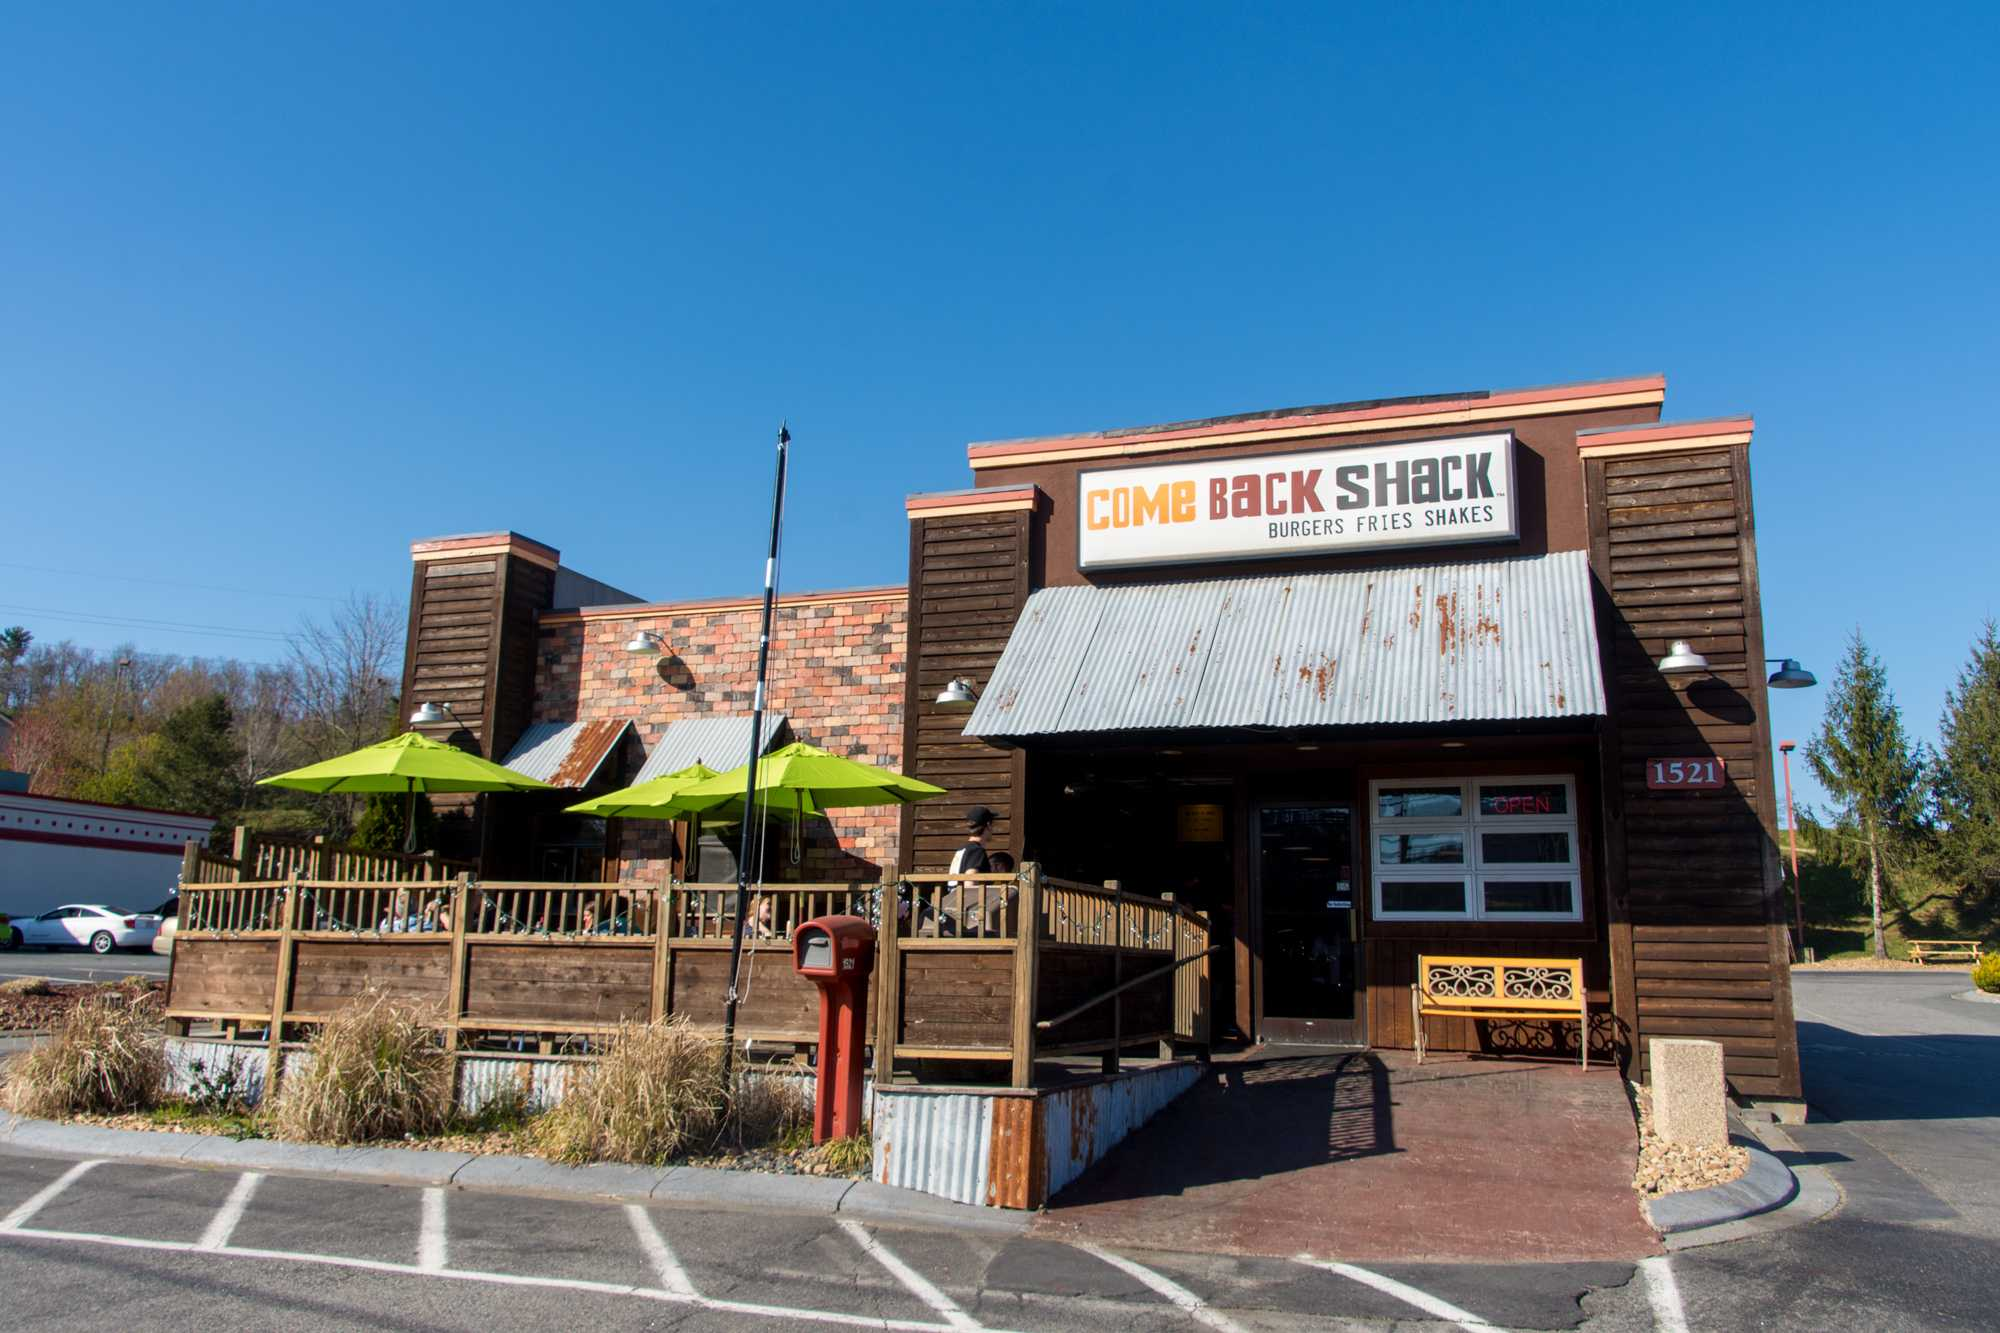 ASU partners with Come Back Shack to raise money for ALS